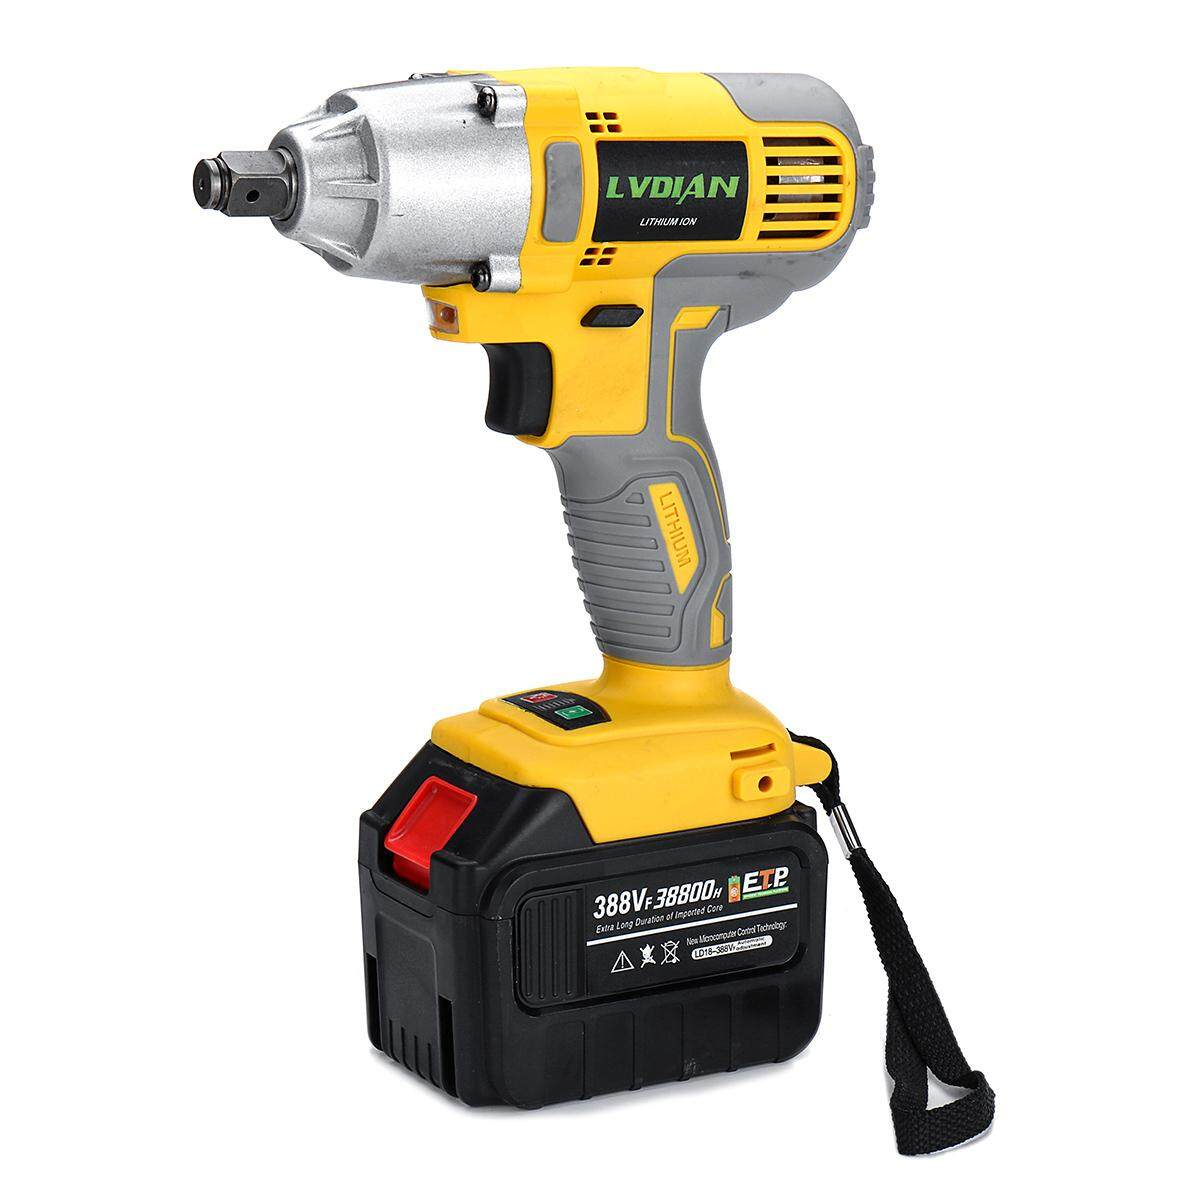 38800mah 388VF Cordless Electric 1/2 Impact Brushless Wrench Driver Hand Drill